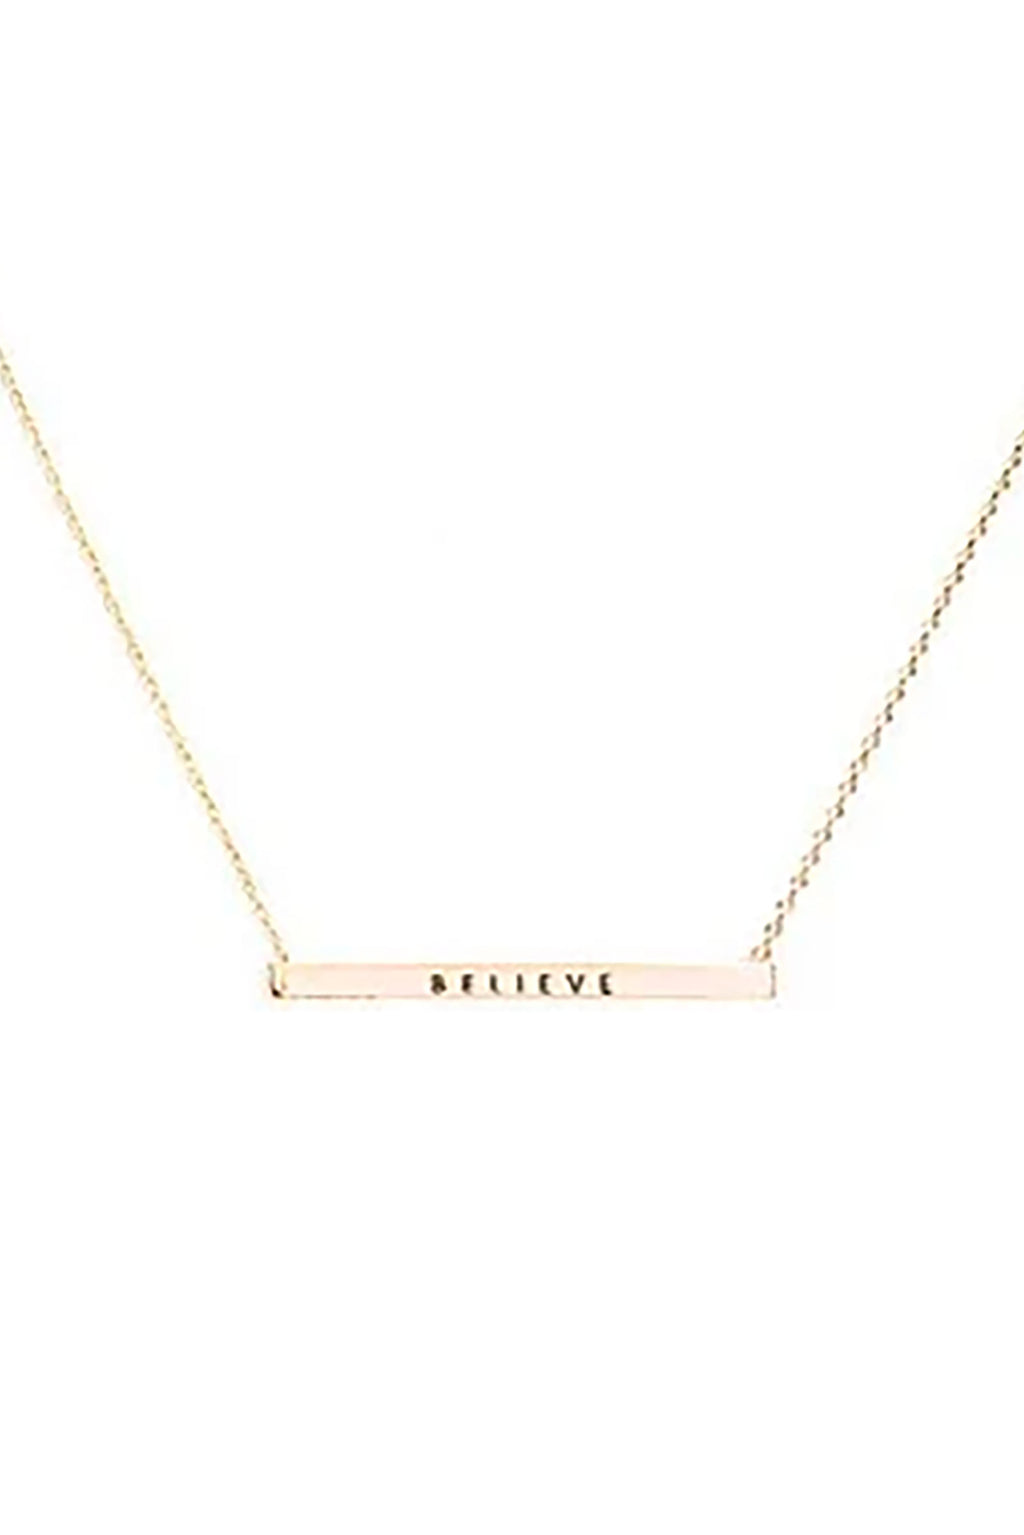 """Believe"" Horizontal Metal Bar Necklace"